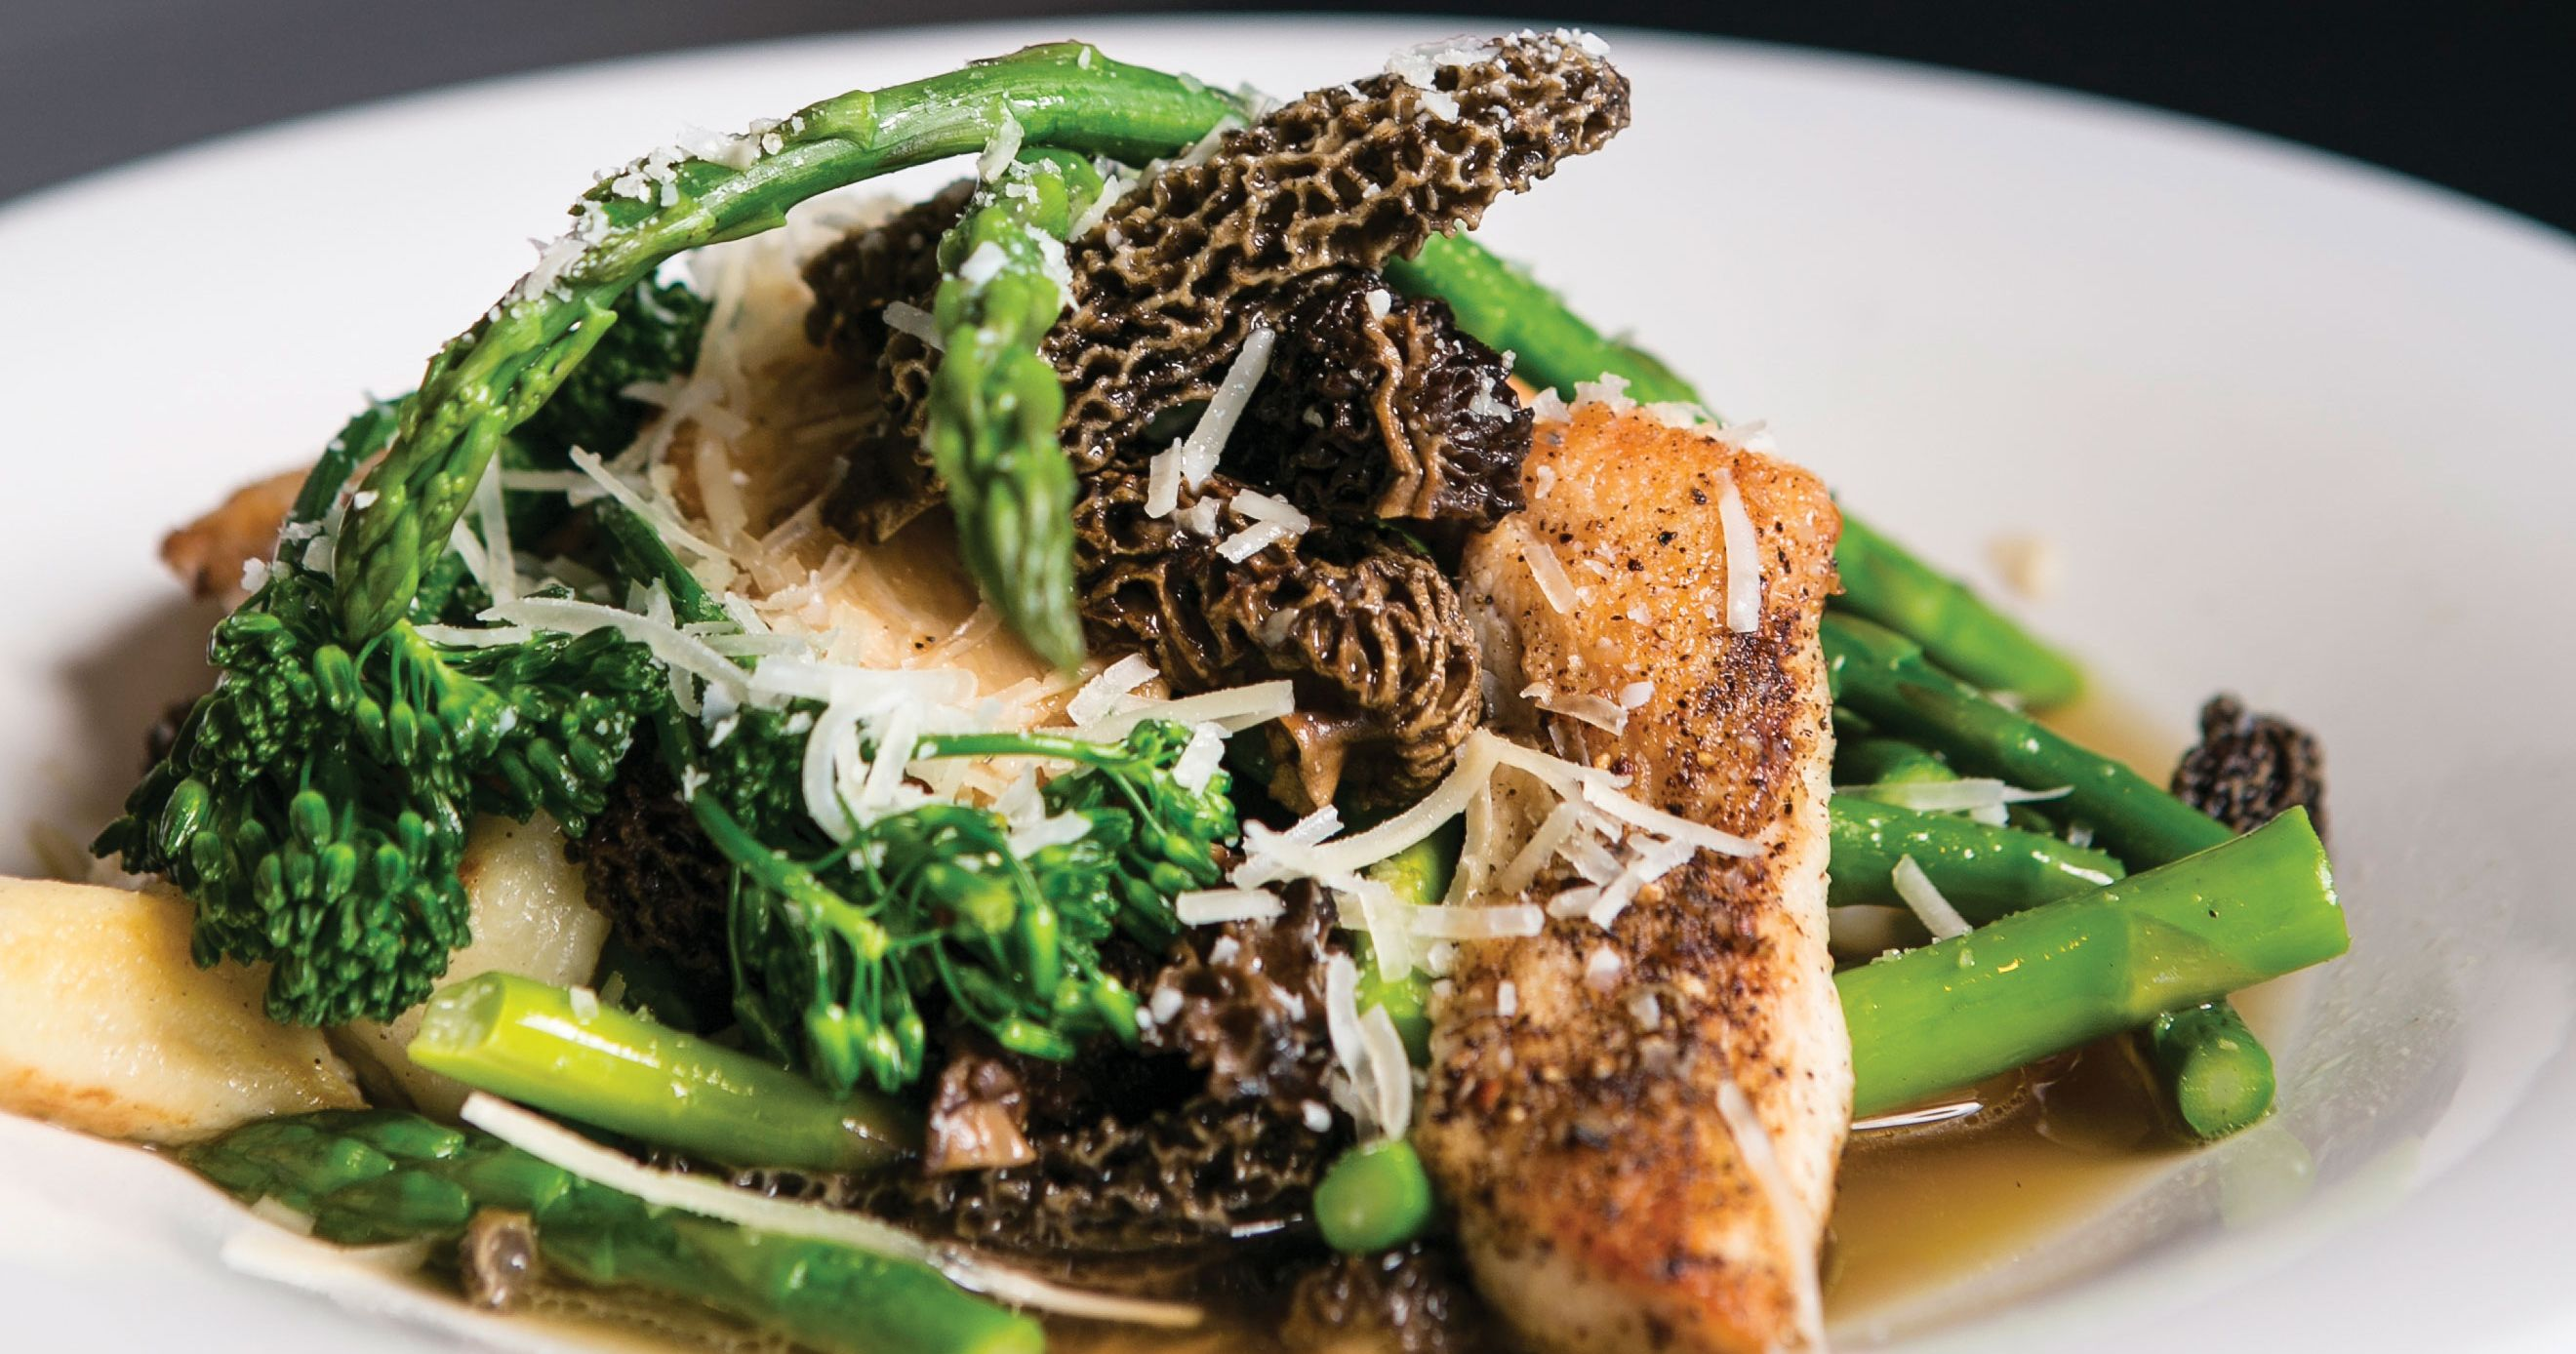 Find Northern Michigan's marvelous morels at these premium dining destinations and taste the spectrum of spring's bounty Up North.